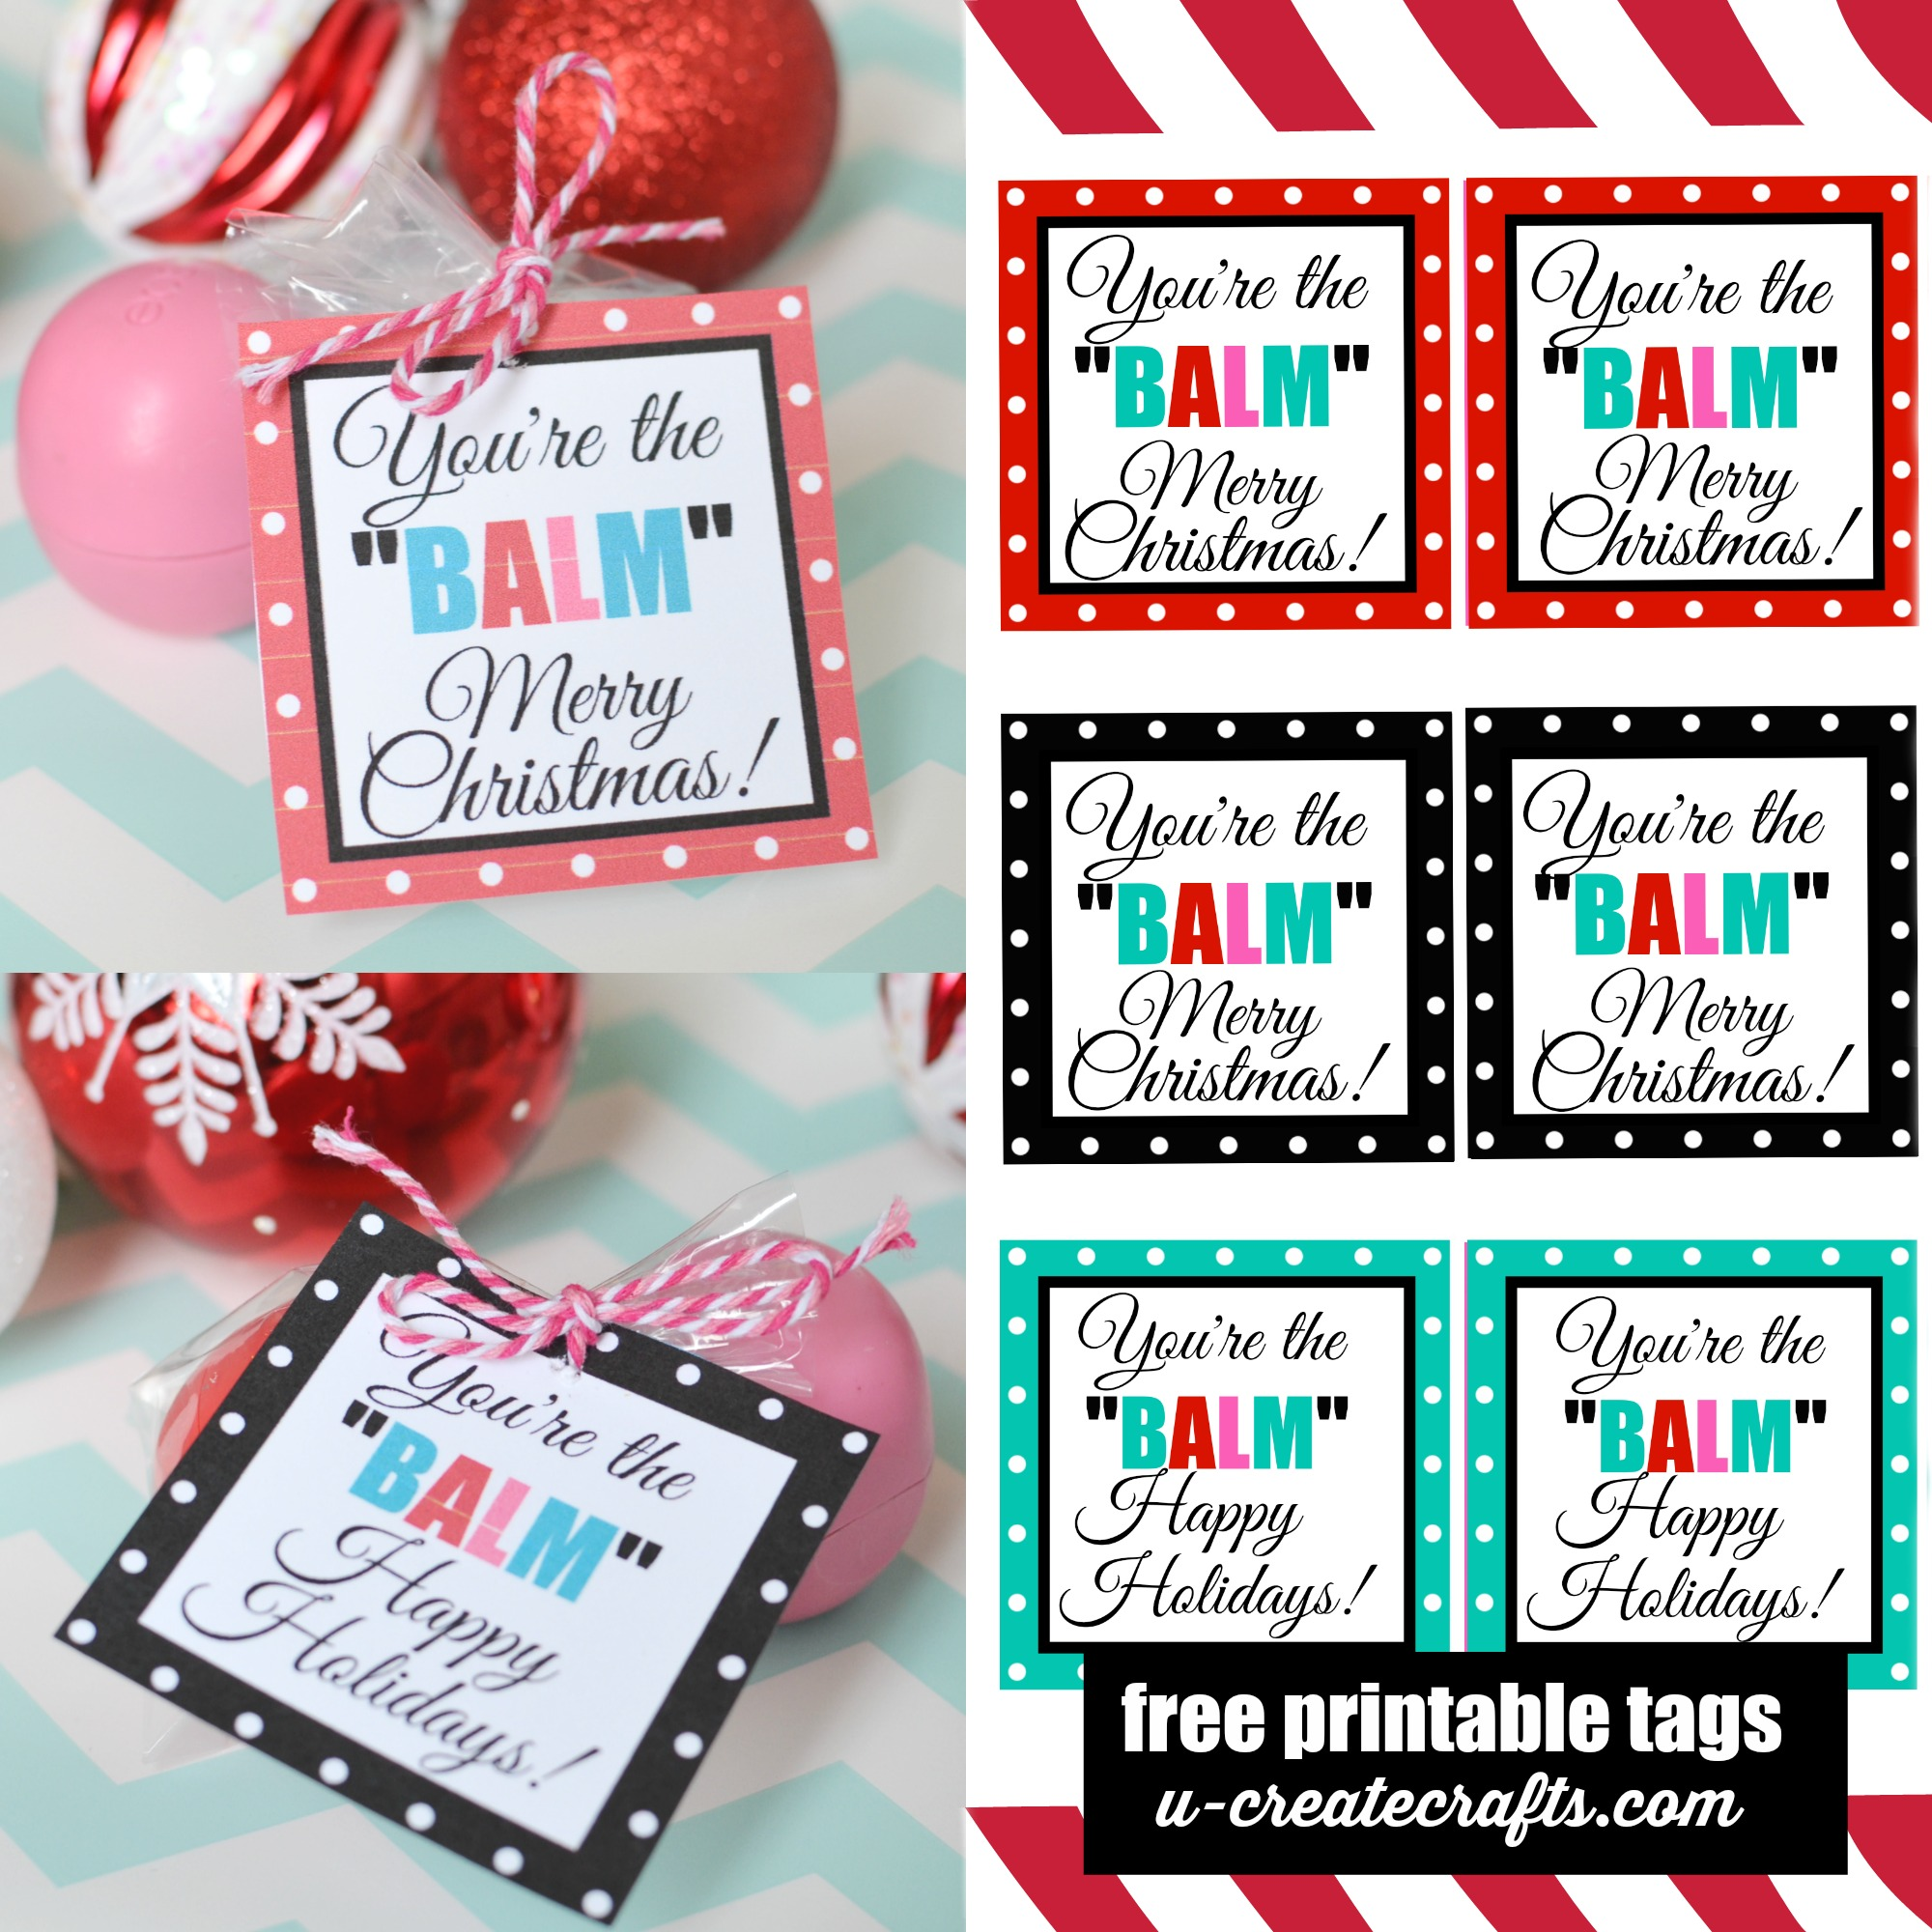 picture regarding You're the Balm Teacher Free Printable referred to as Youre the BALM - Xmas Printables - U Deliver